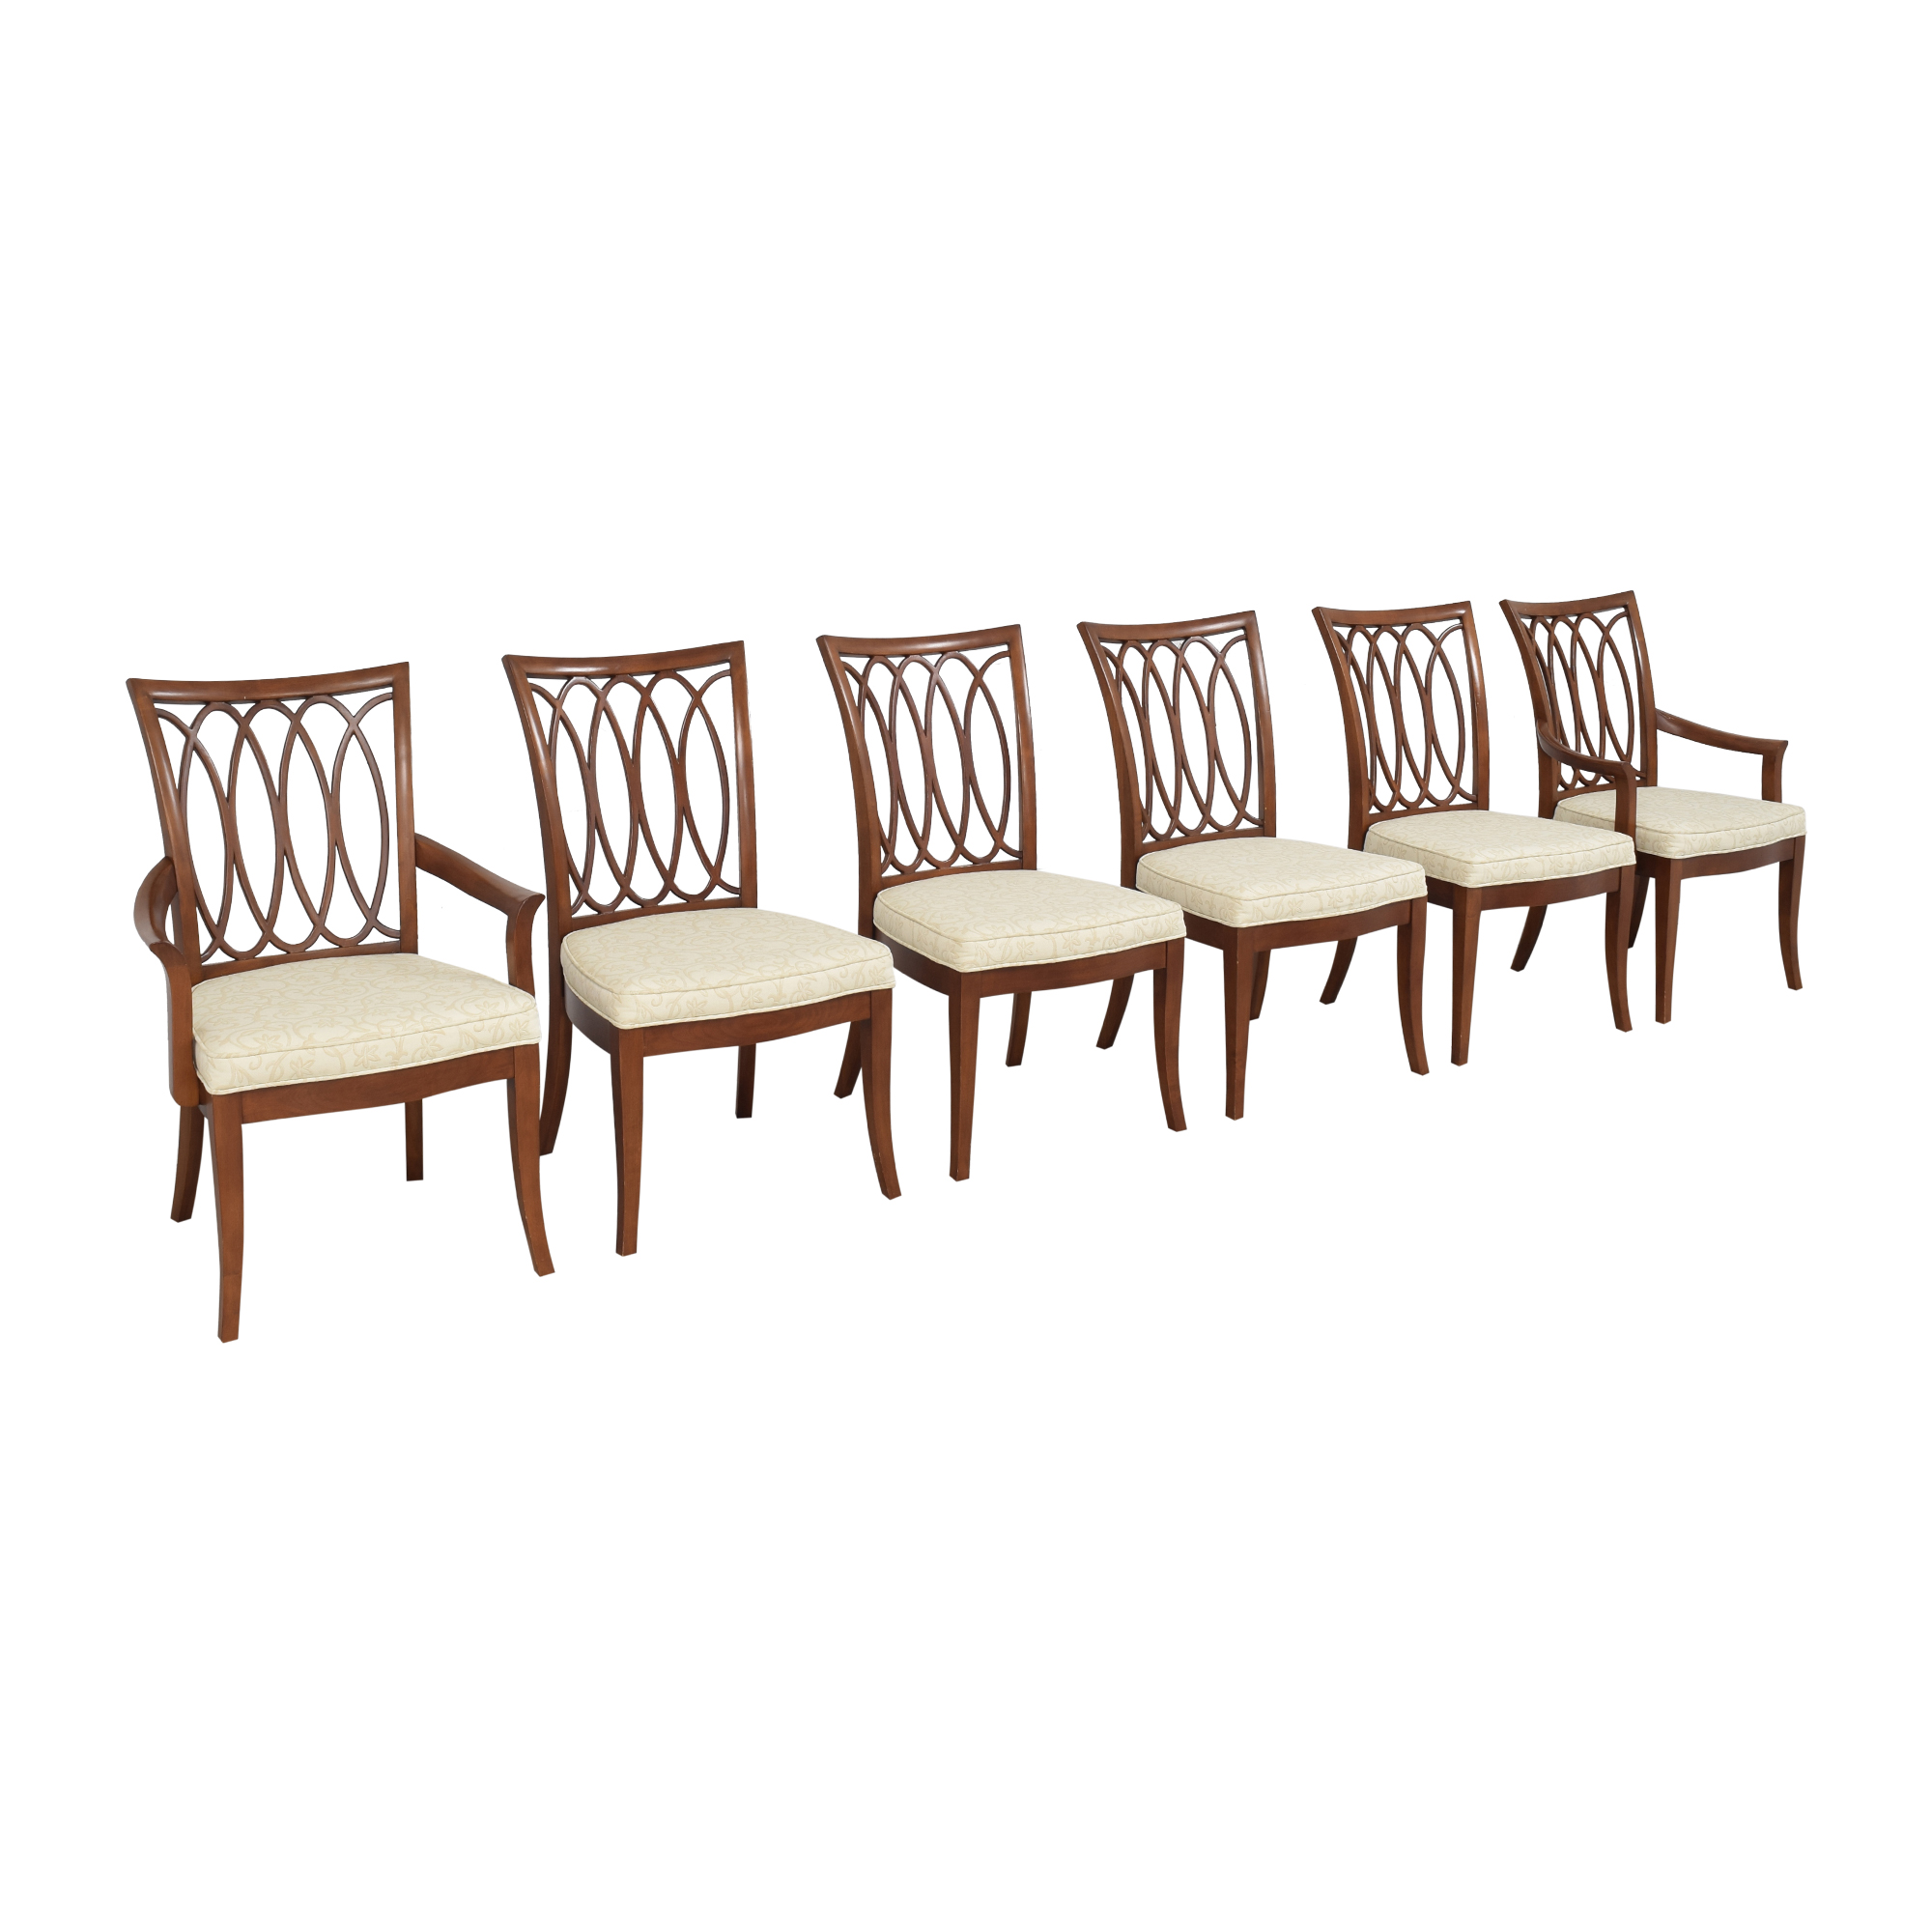 Stanley Furniture Stanley Furniture Hudson Street Dining Chairs on sale